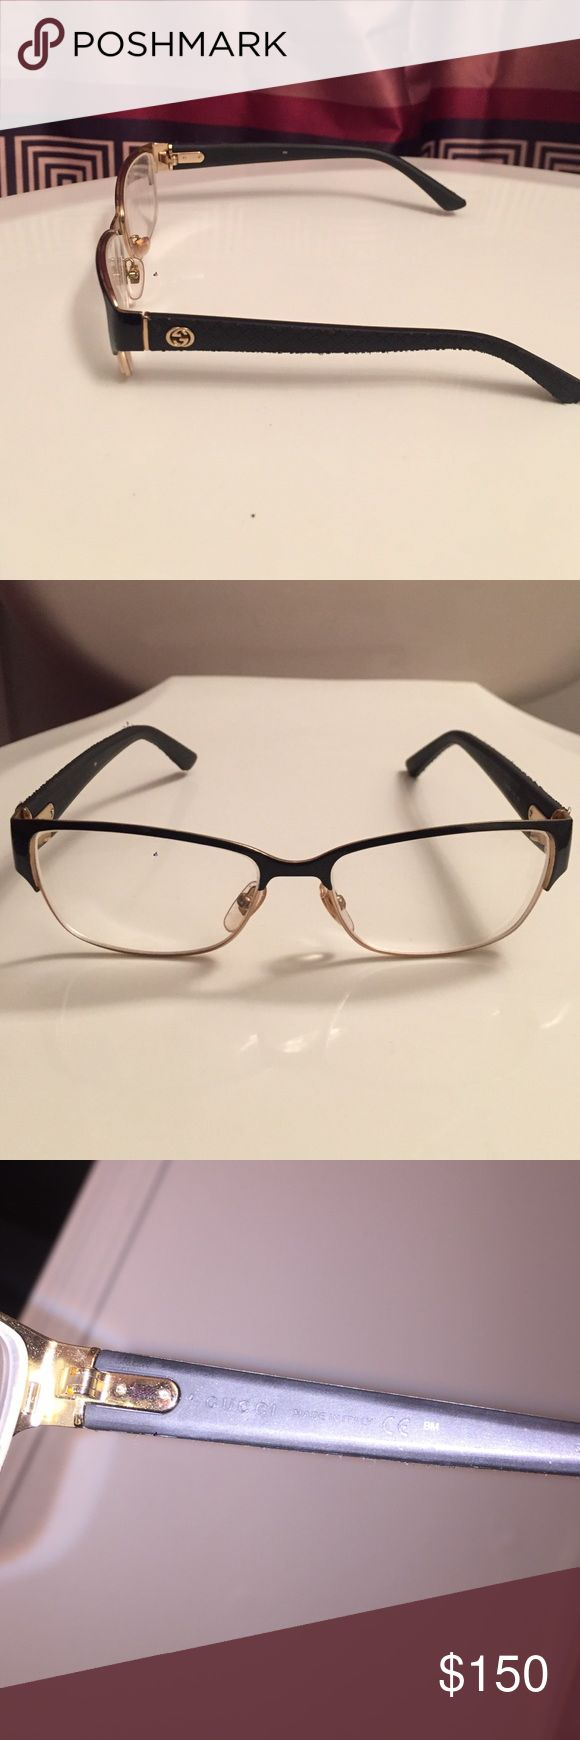 Gucci eyeglasses High end, high quality. Good condition. Very comfortable, fits well on any face size. I bought new glasses so I'm just trying to get rid if these. Gucci Accessories Glasses